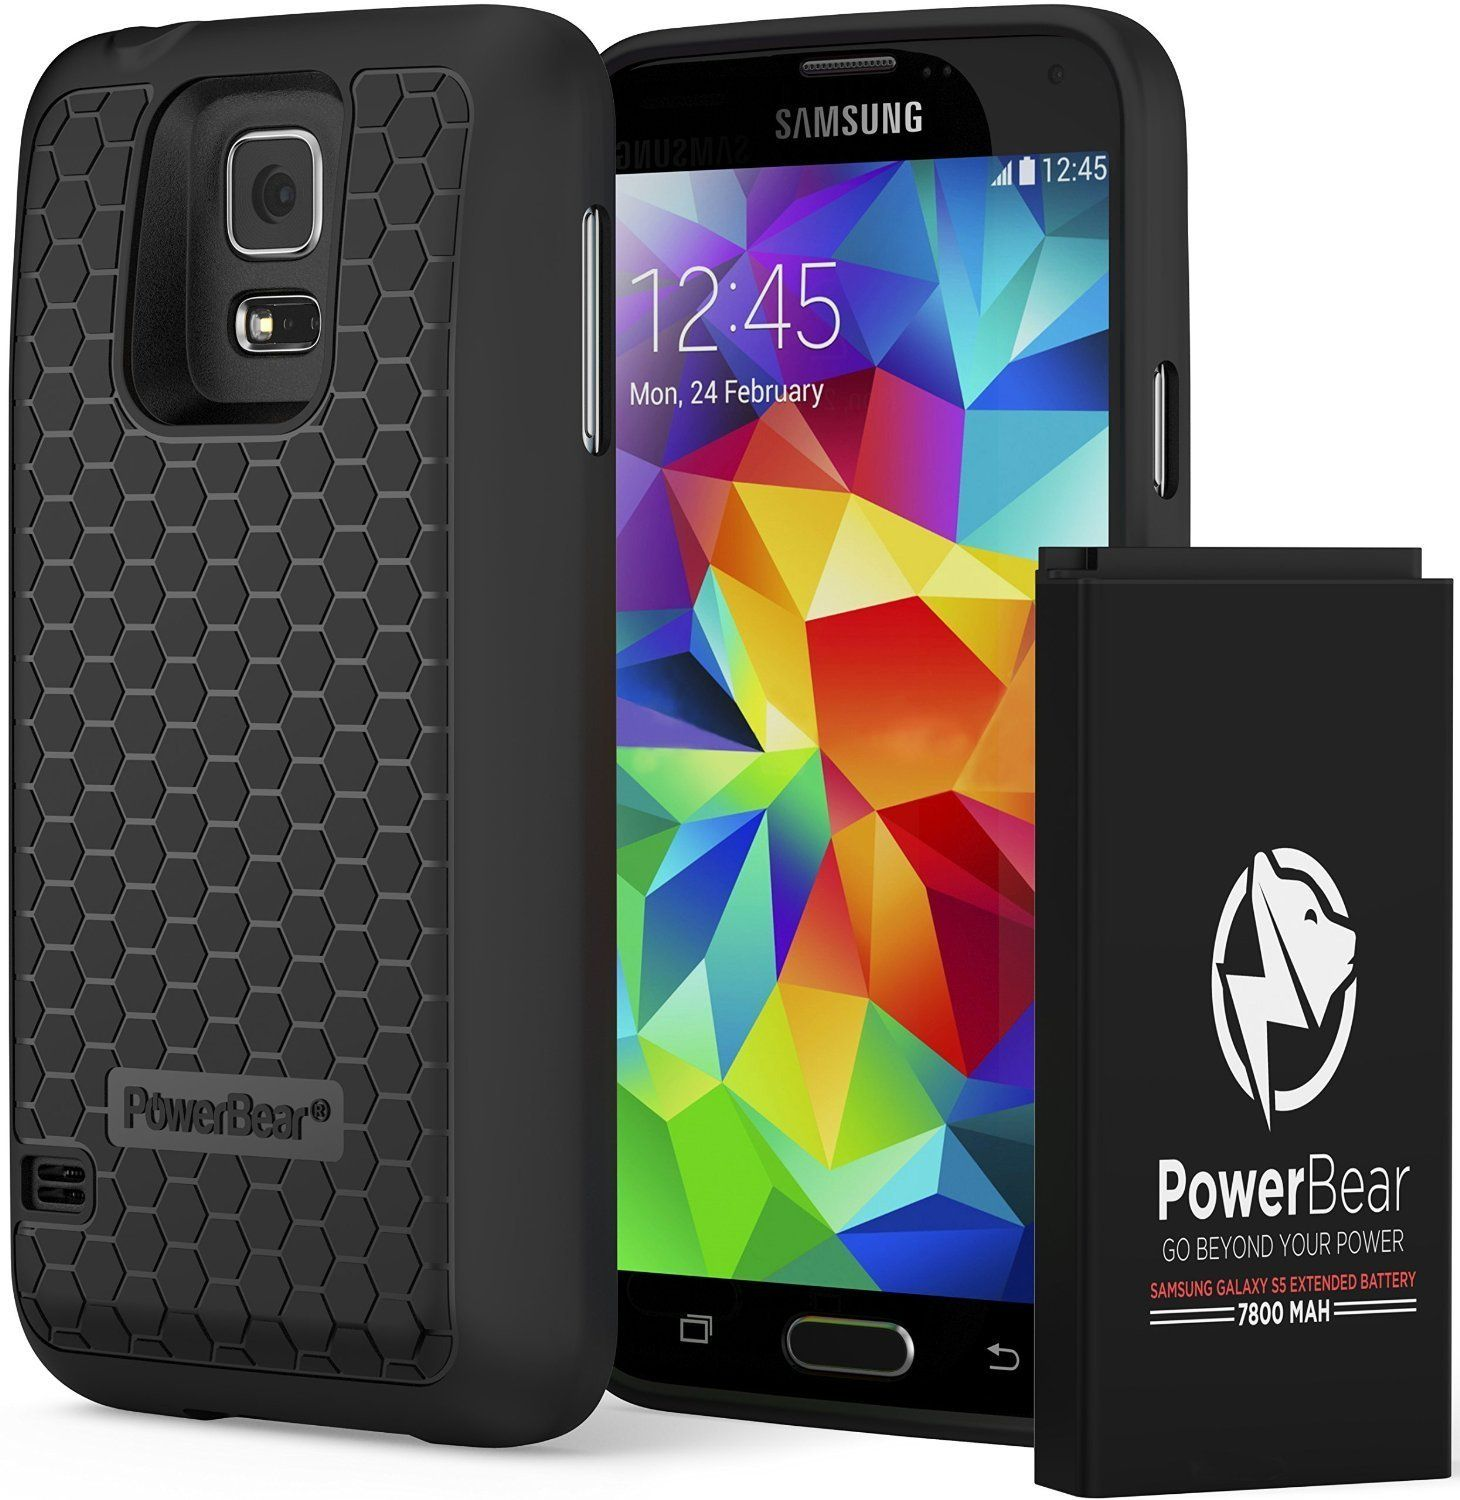 Amazon Com Powerbear Samsung Galaxy S5 Extended Battery 7800mah Amp Back Cover Amp Protective Case Up To 2 75x Extra Samsung Galaxy S5 Galaxy S5 Galaxy